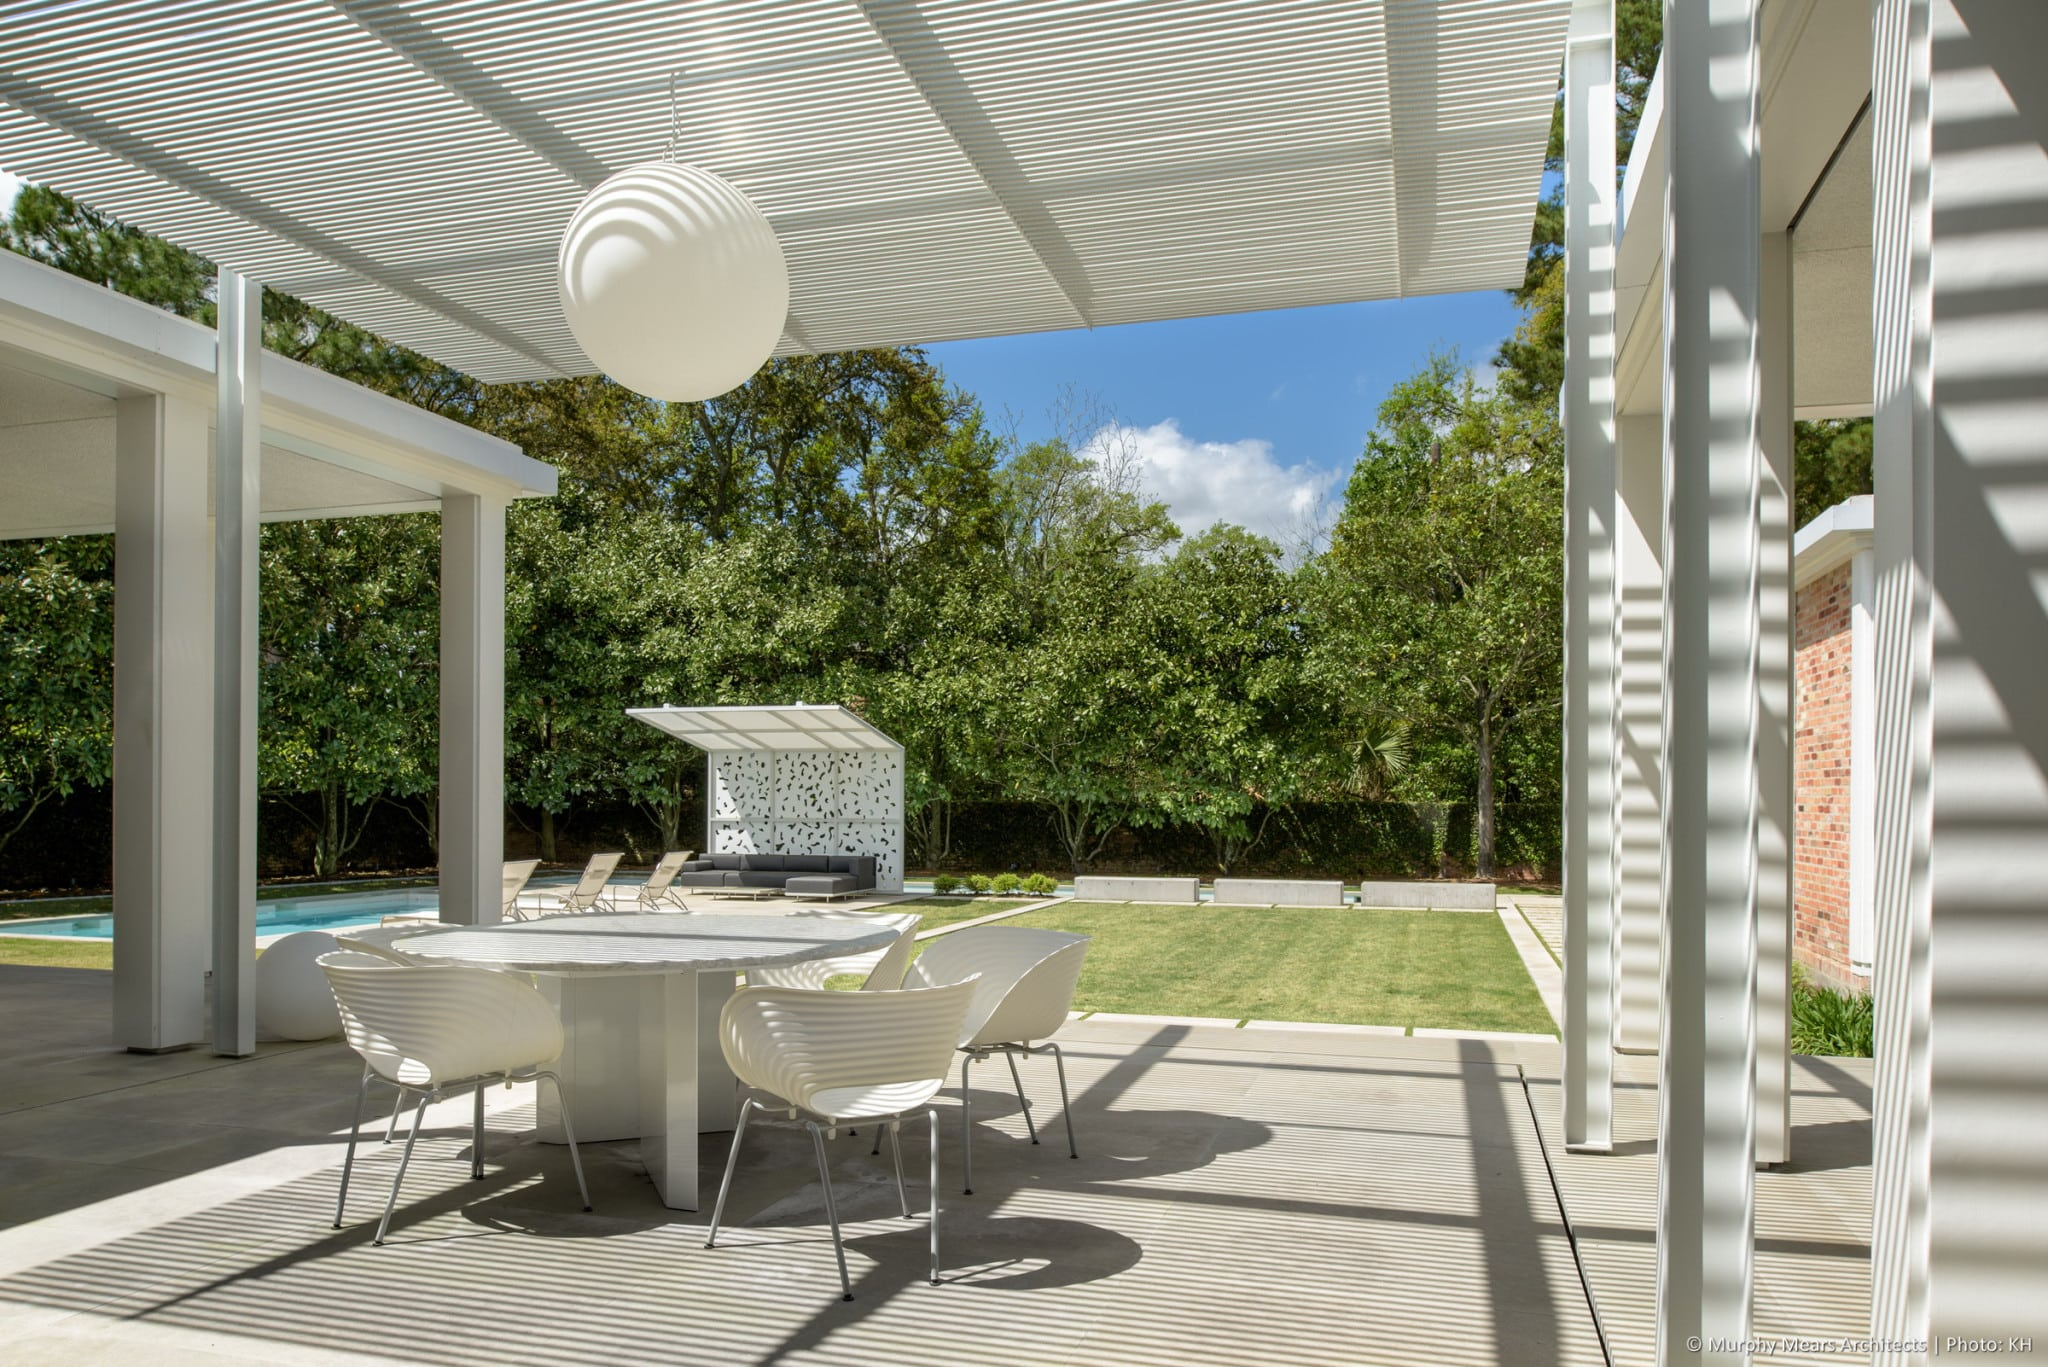 Outdoor dining area beneath the aluminum and steel trellis, overlooking the central lawn, with the pool terrace shade canopy beyond.